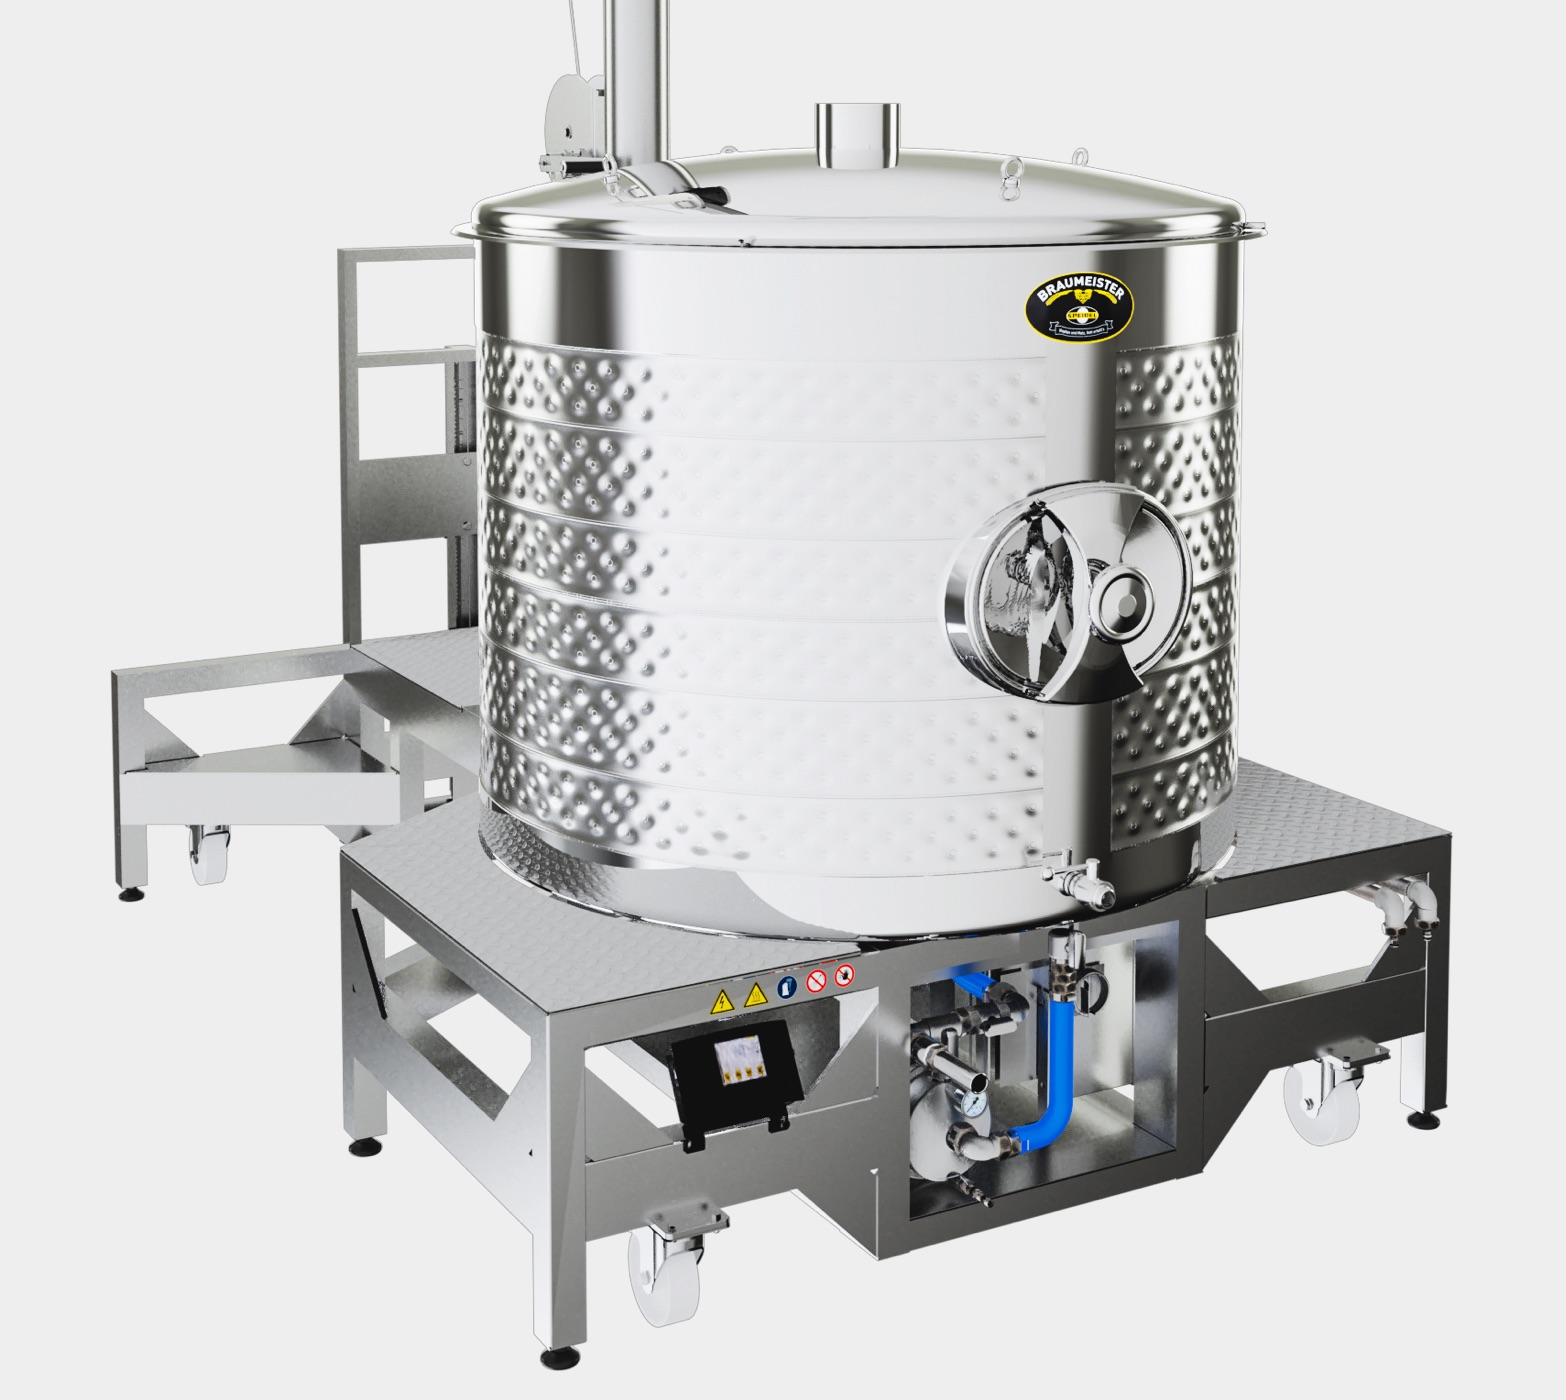 Home brewing equipment made of stainless steel - Speidels Braumeister